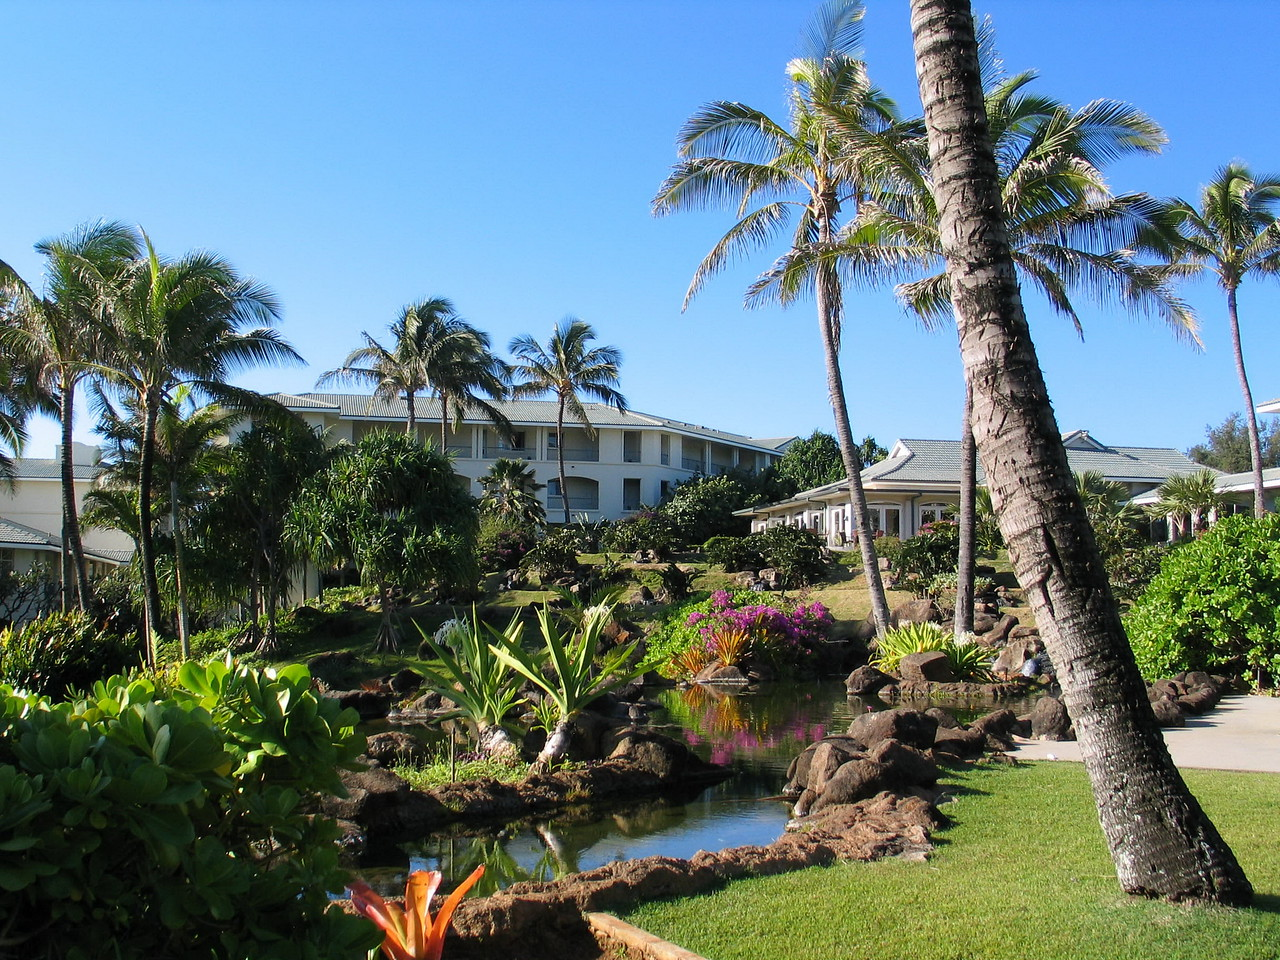 190 - The Point at Poipu Resort